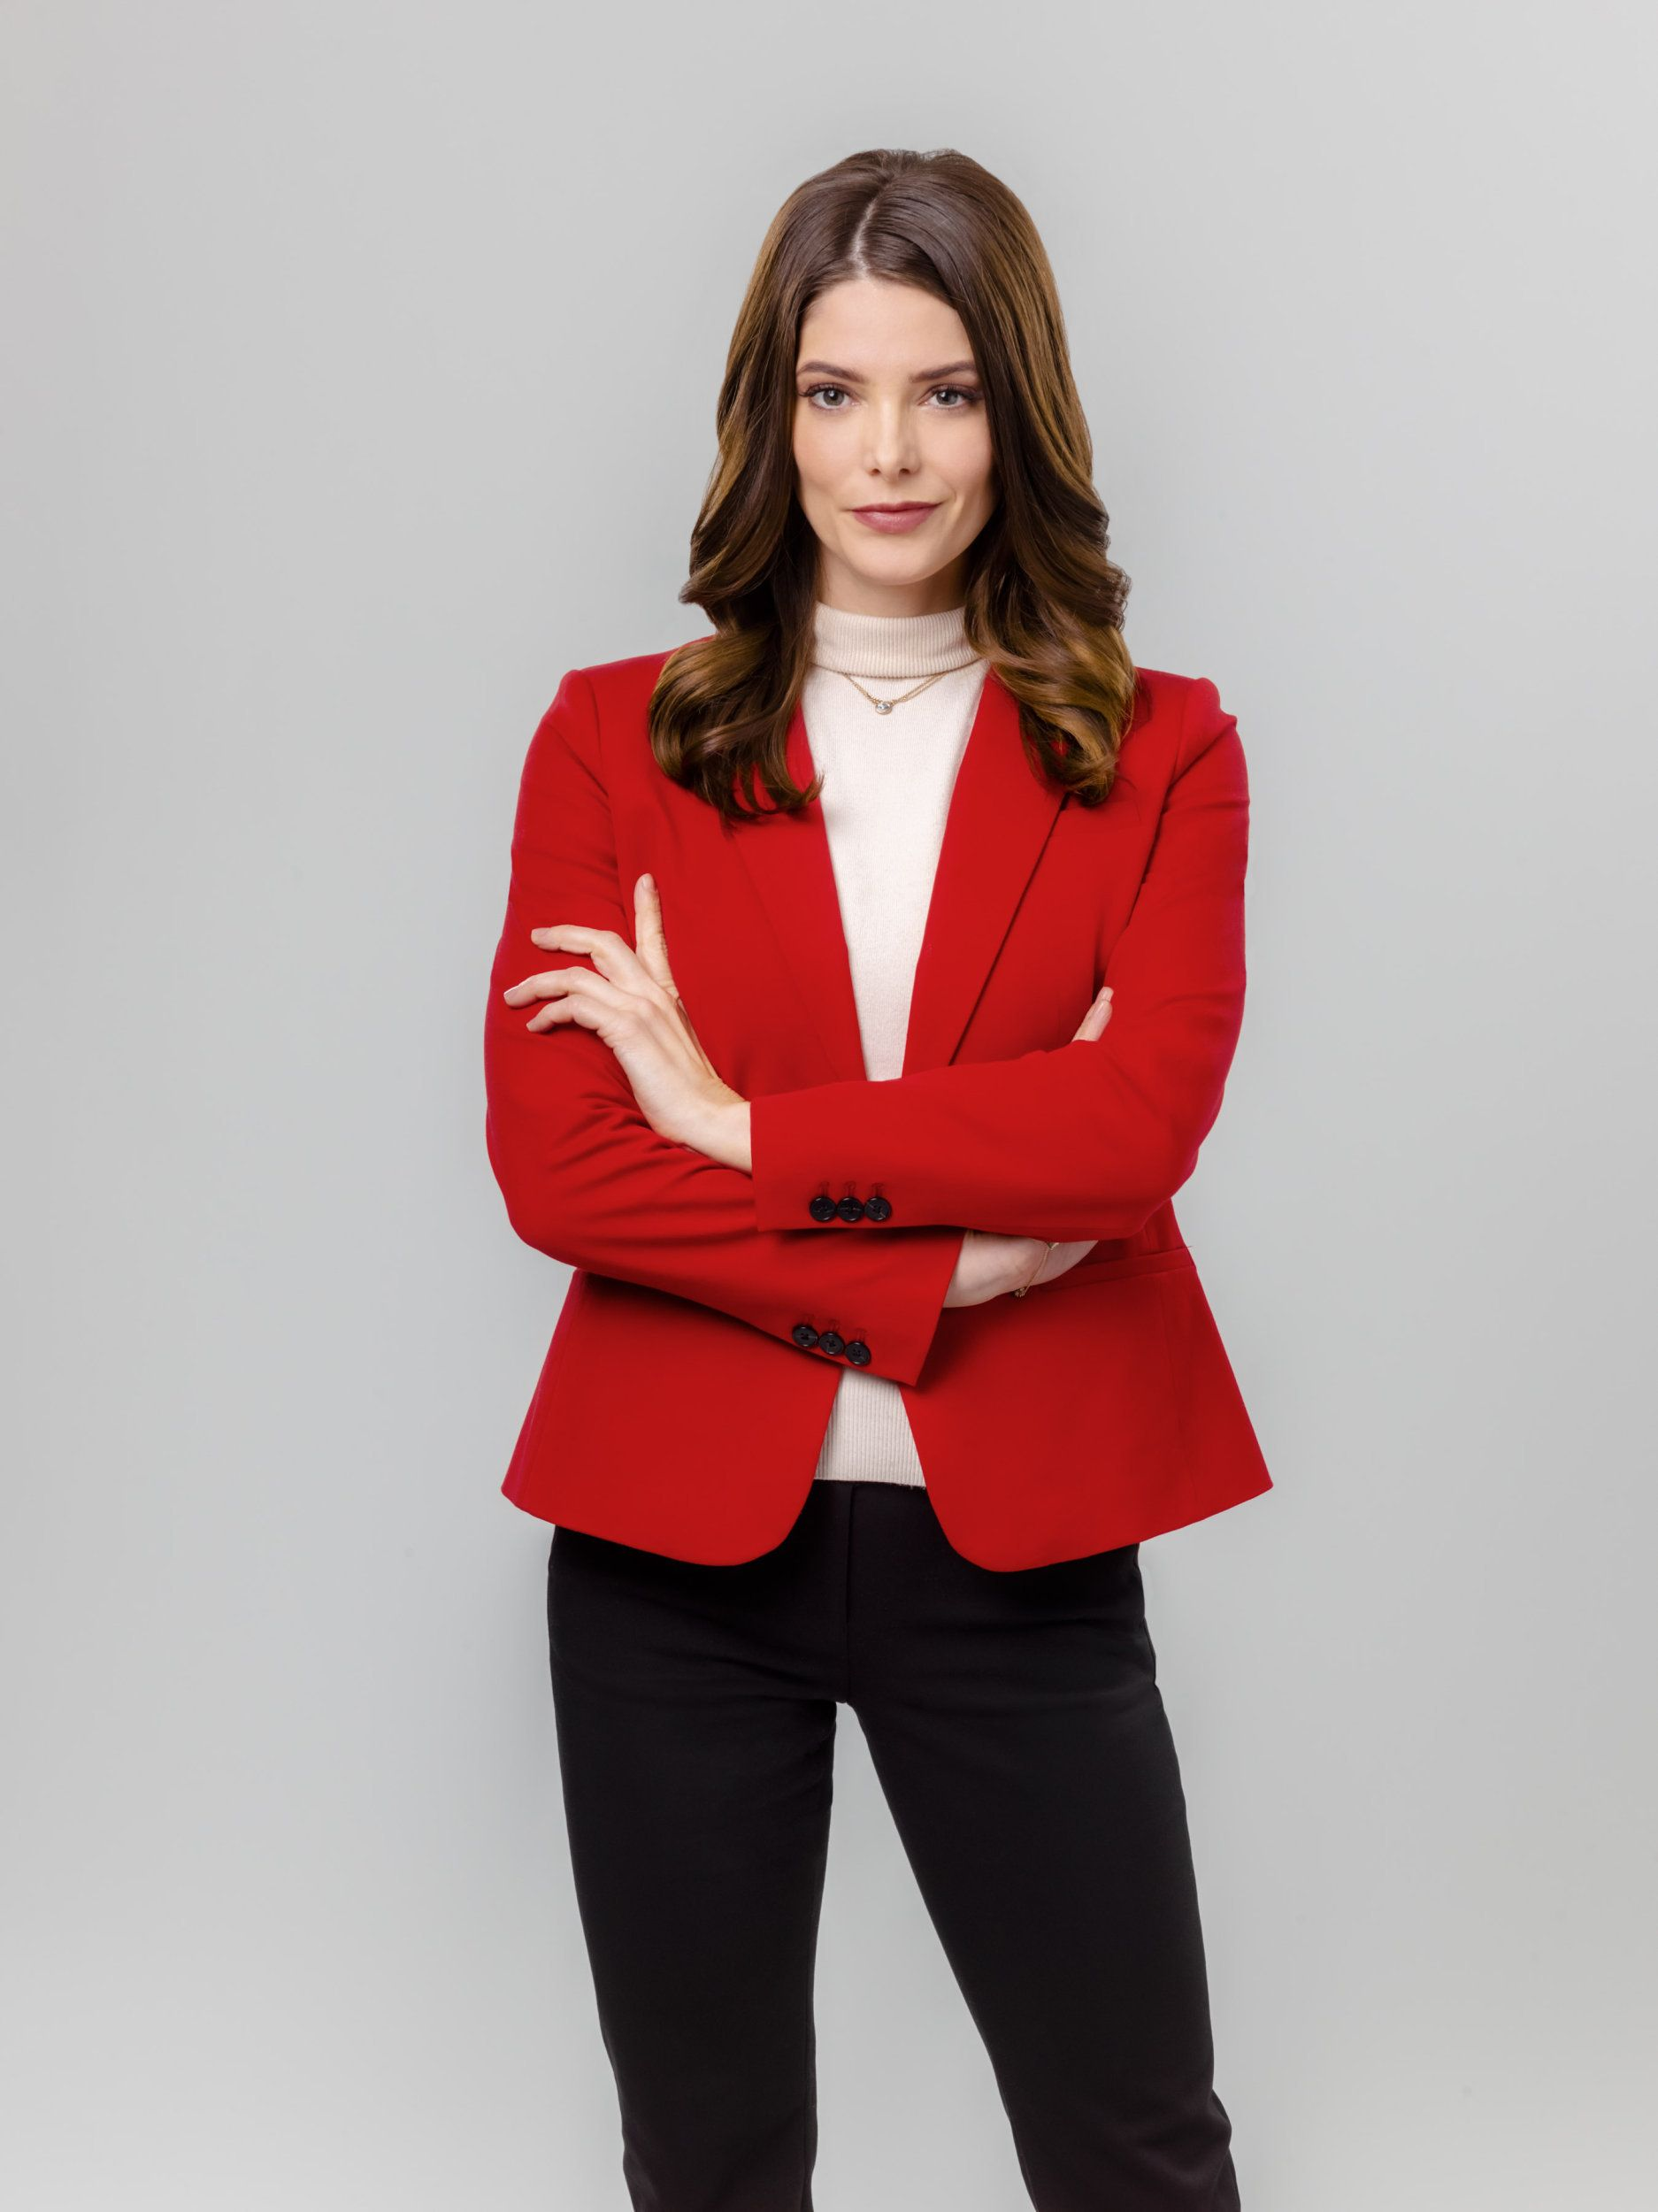 """Learn more about the cast of Hallmark Movies & Mysteries' original movie, """"Christmas On My Mind ..."""